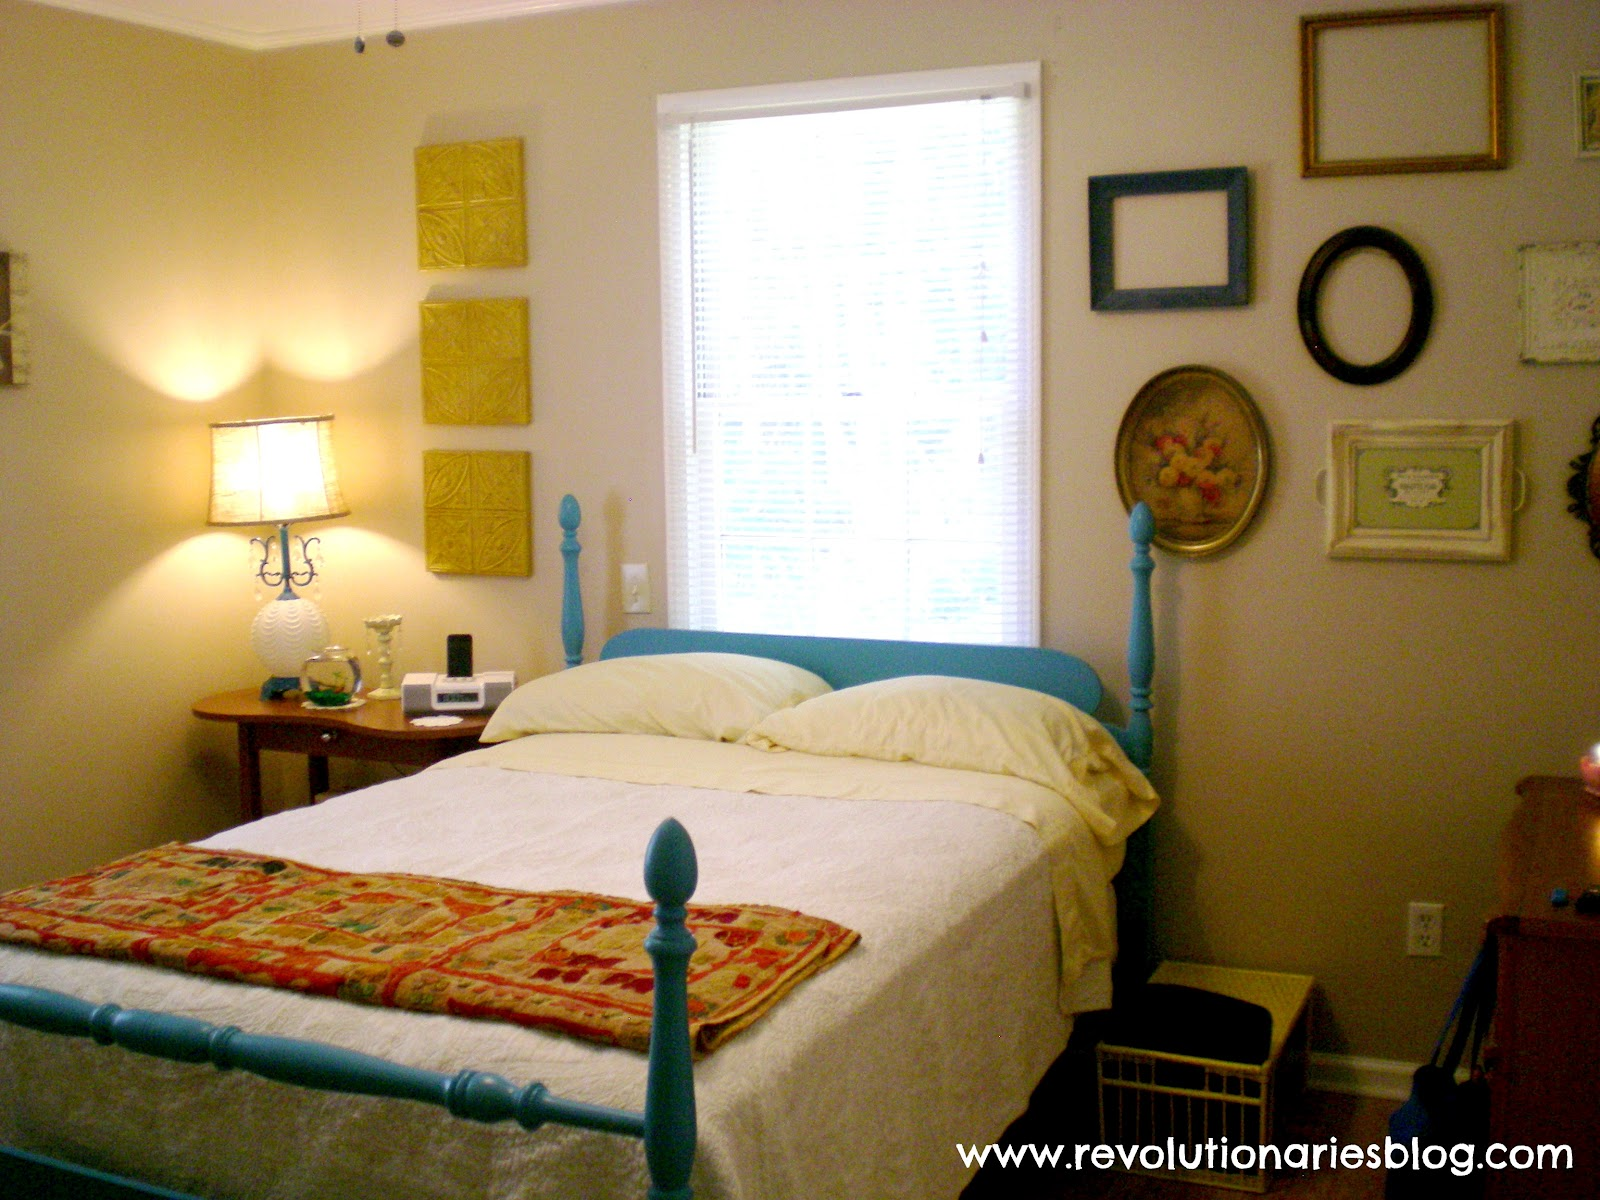 Revolutionaries: Design Advice: Curtains for my Bedroom